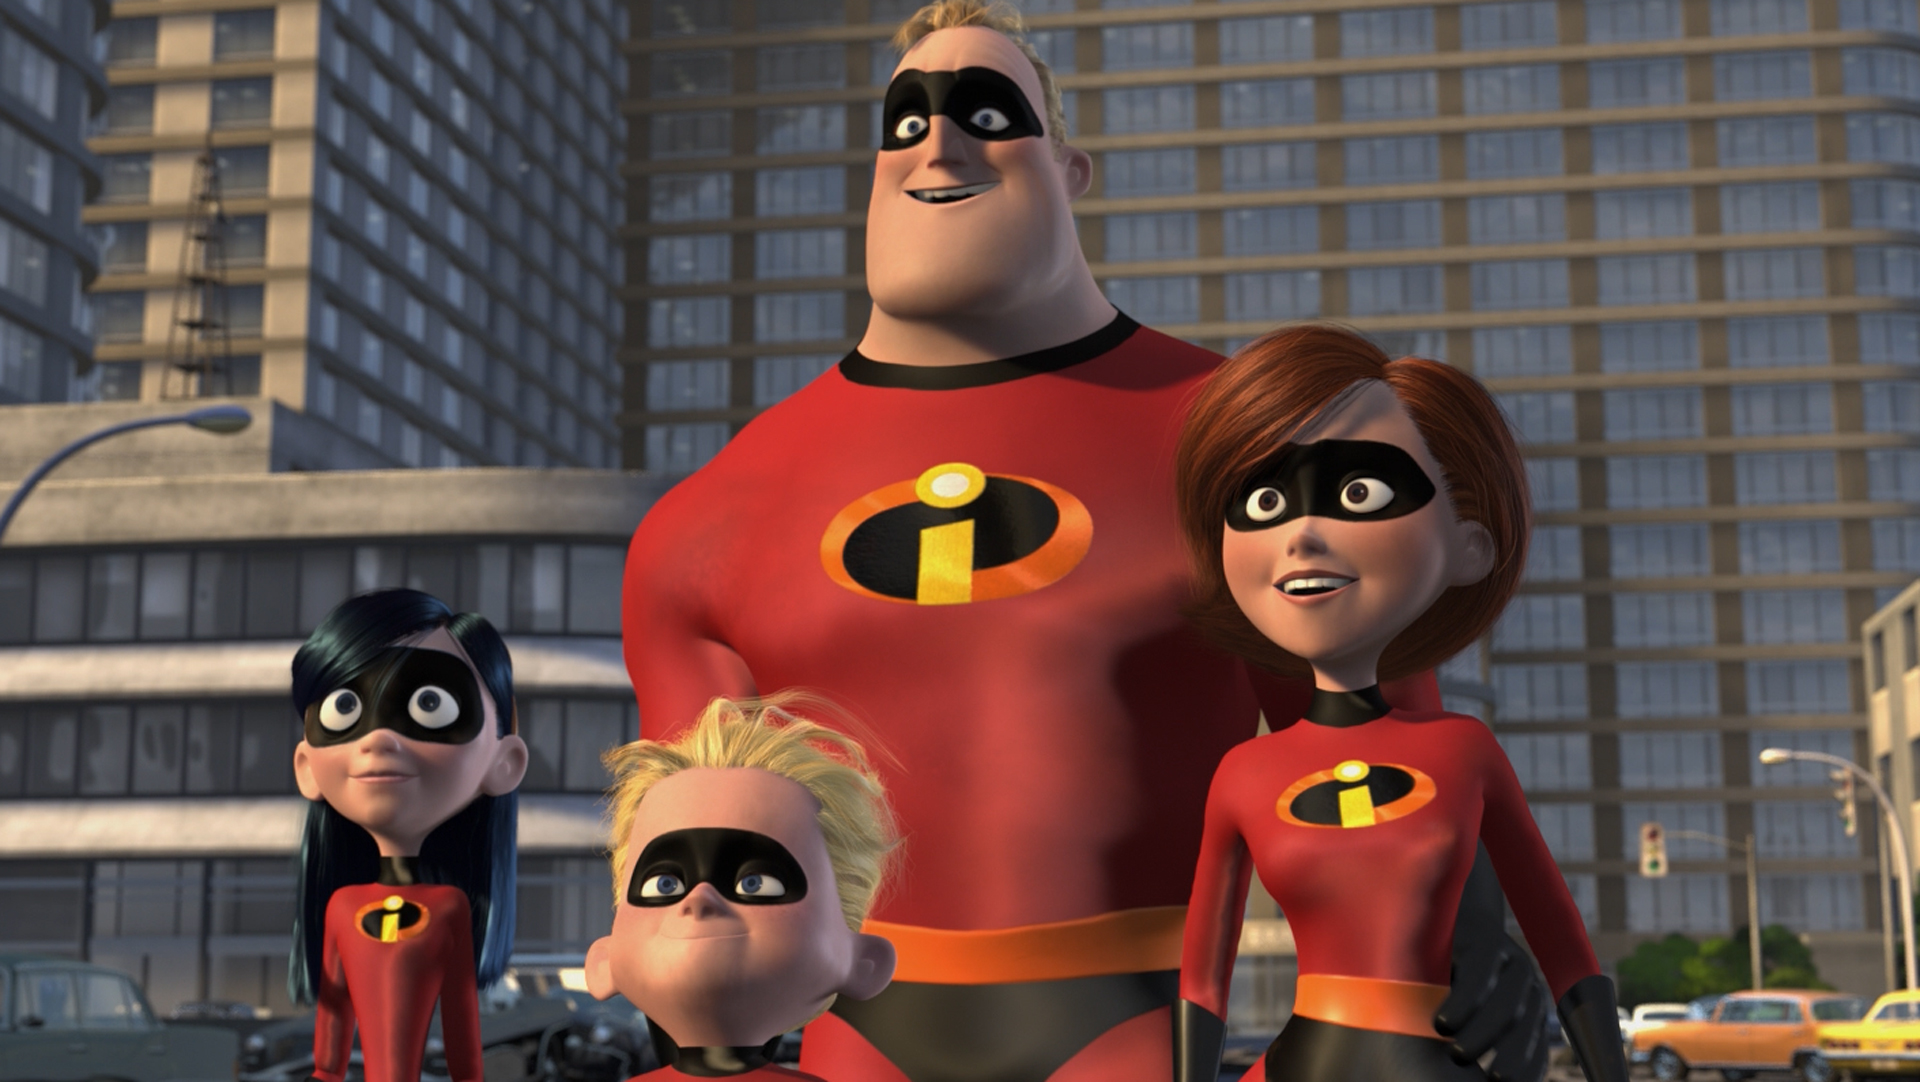 Incredibles 2 just made box office history